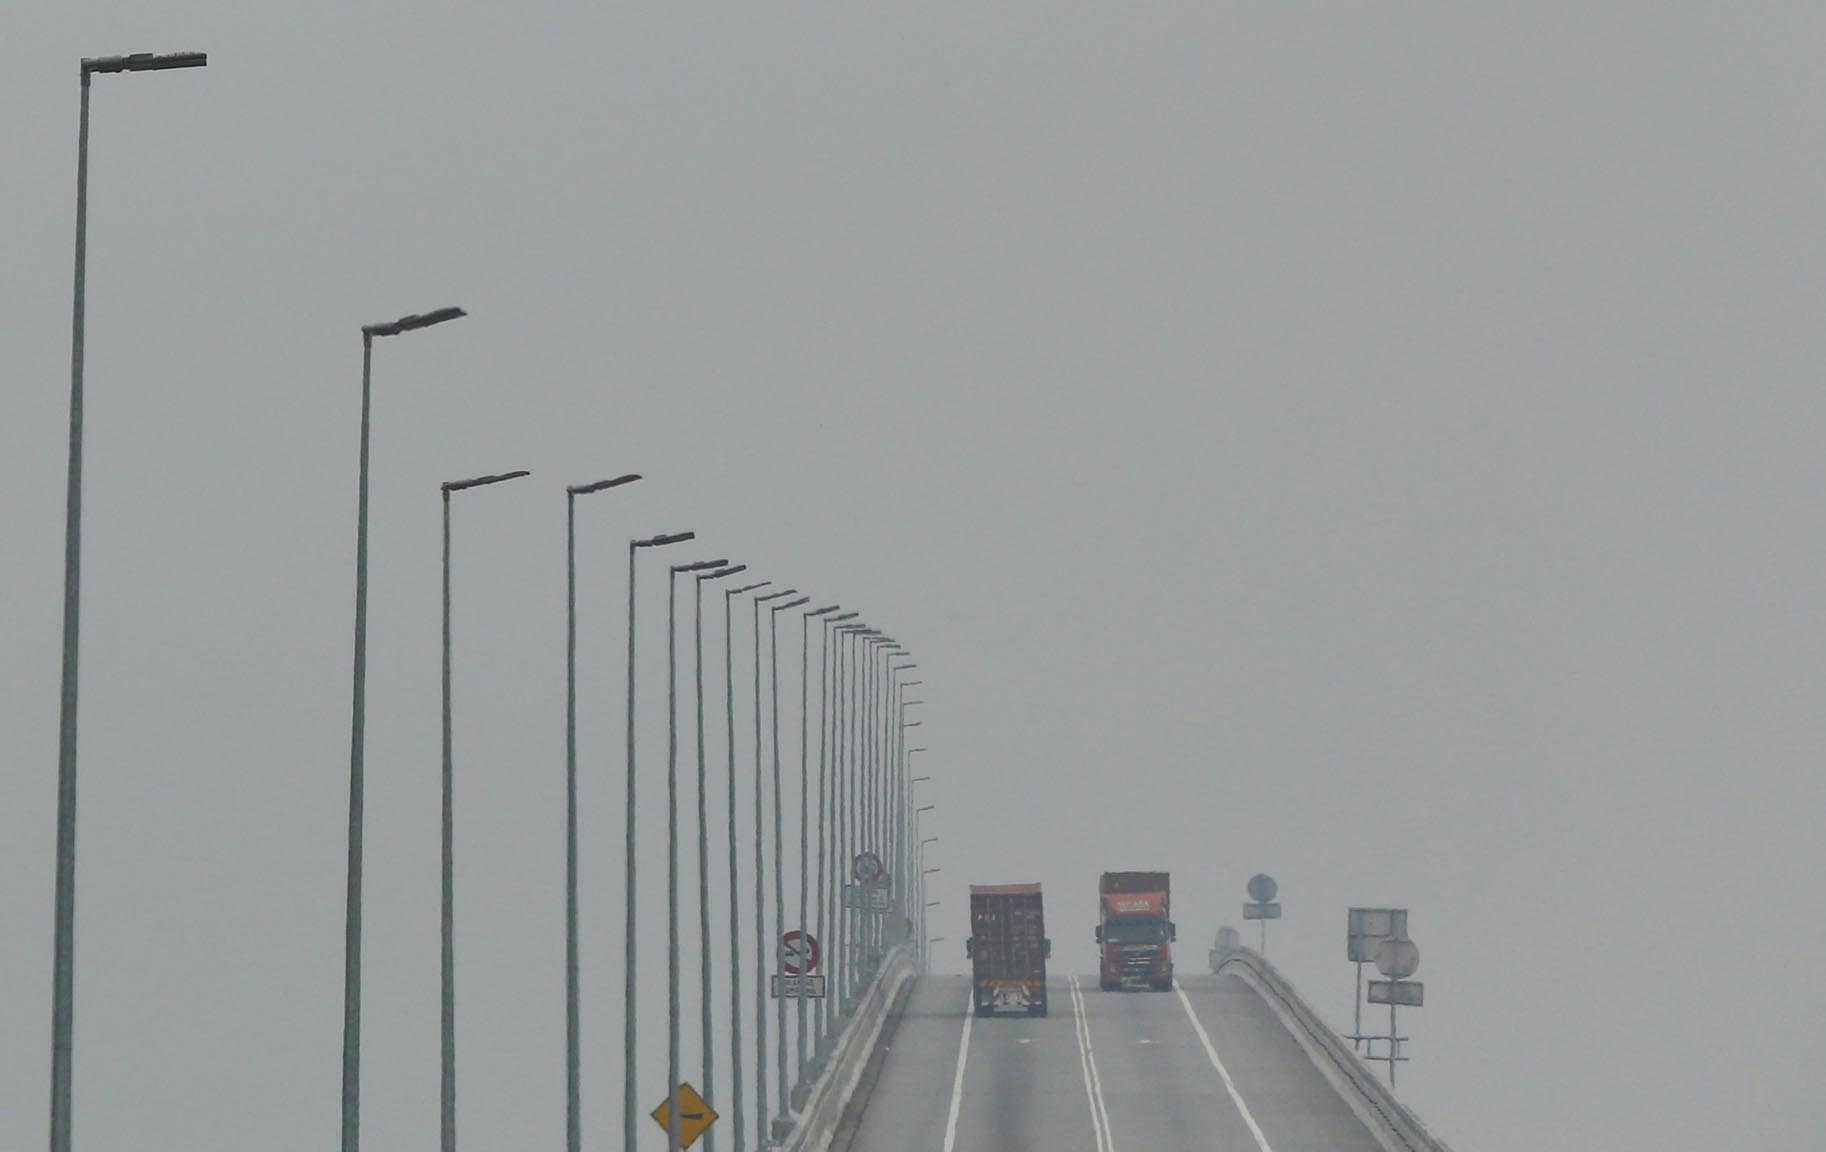 Lorries cross a bridge shrouded in haze in Klang, Malaysia